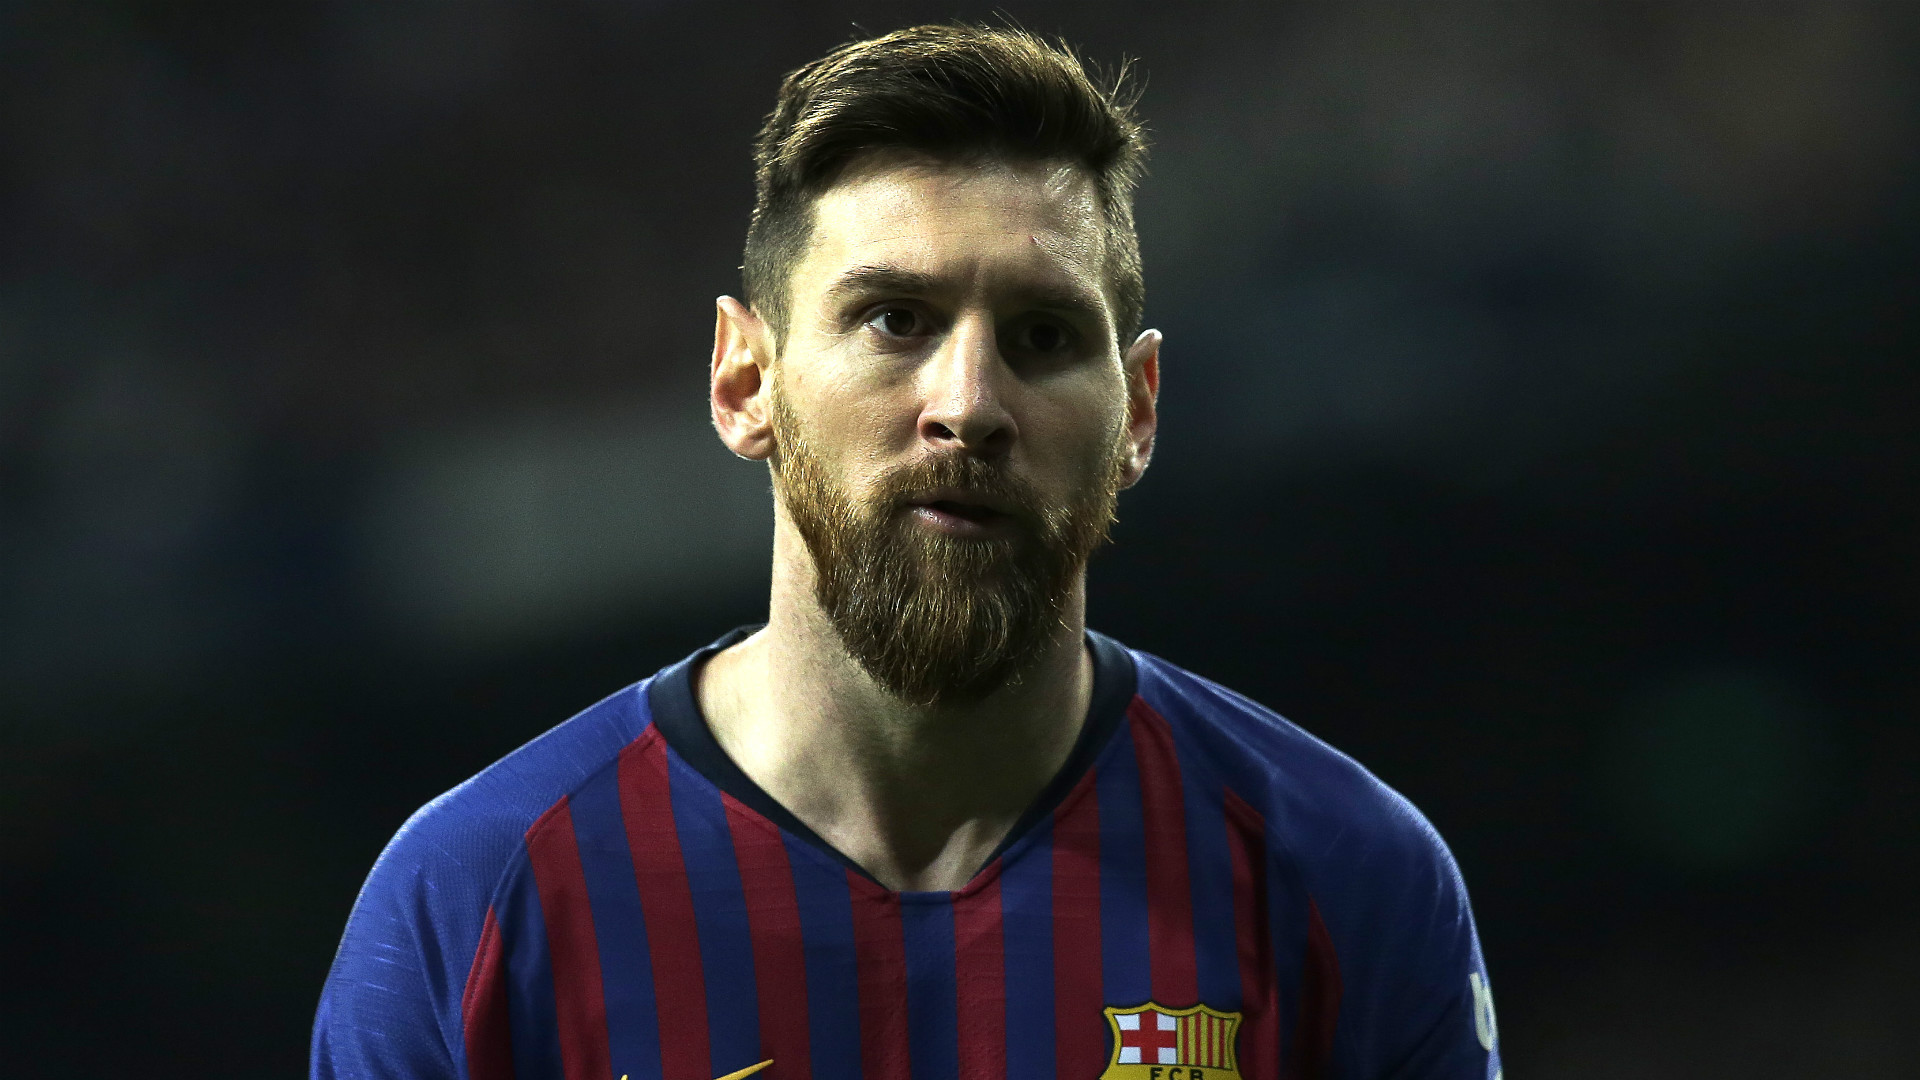 https://images.performgroup.com/di/library/GOAL/4c/3c/lionel-messi-barcelona-2018-19_1olxljd1p6qbp1woqfg9m1e5db.jpg